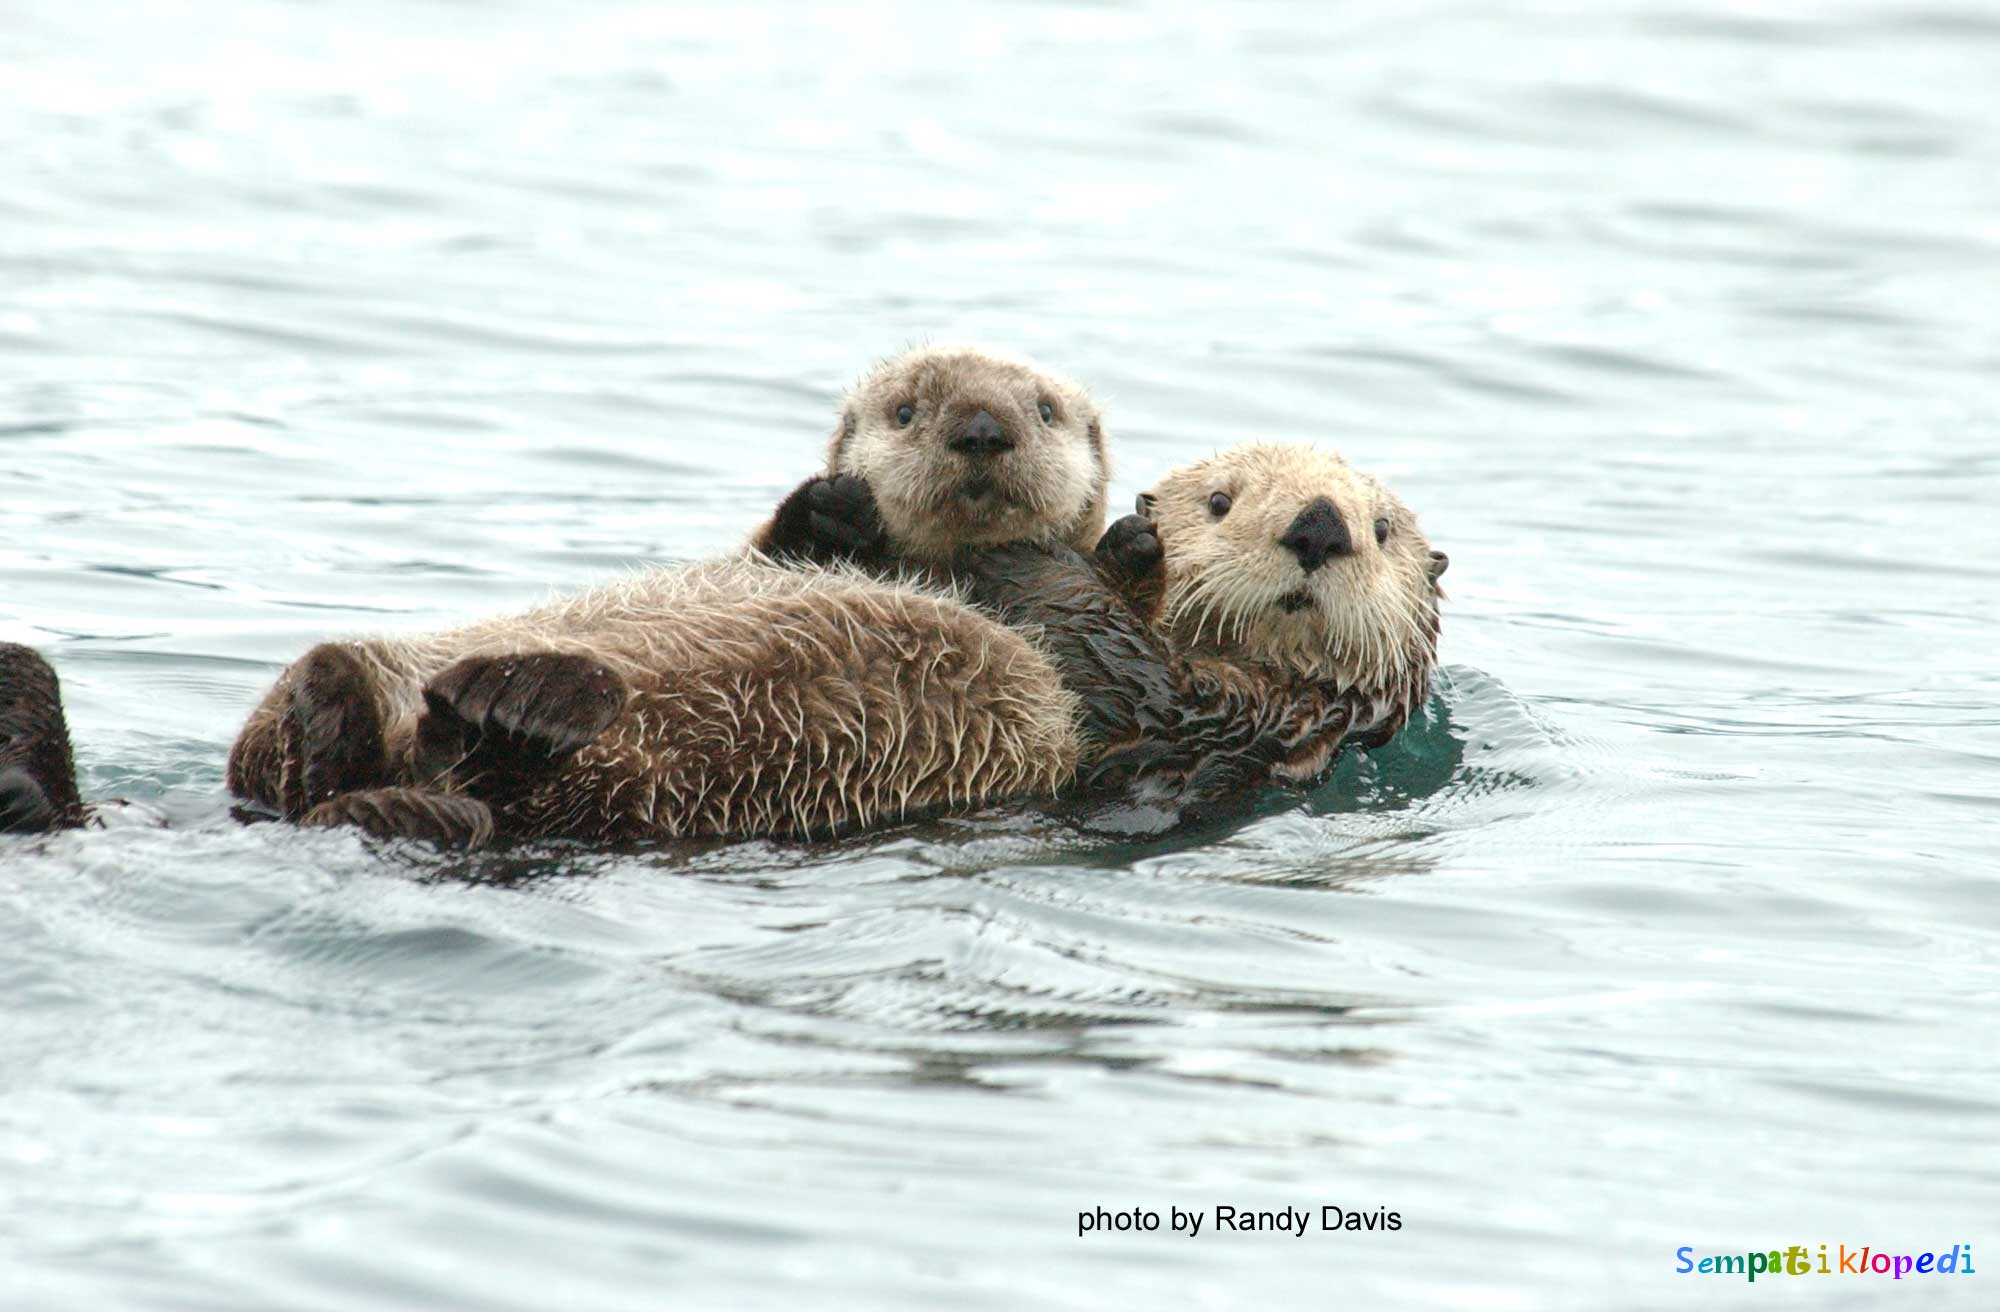 Asthmatic Sea Otter Learns To Use An Inhaler